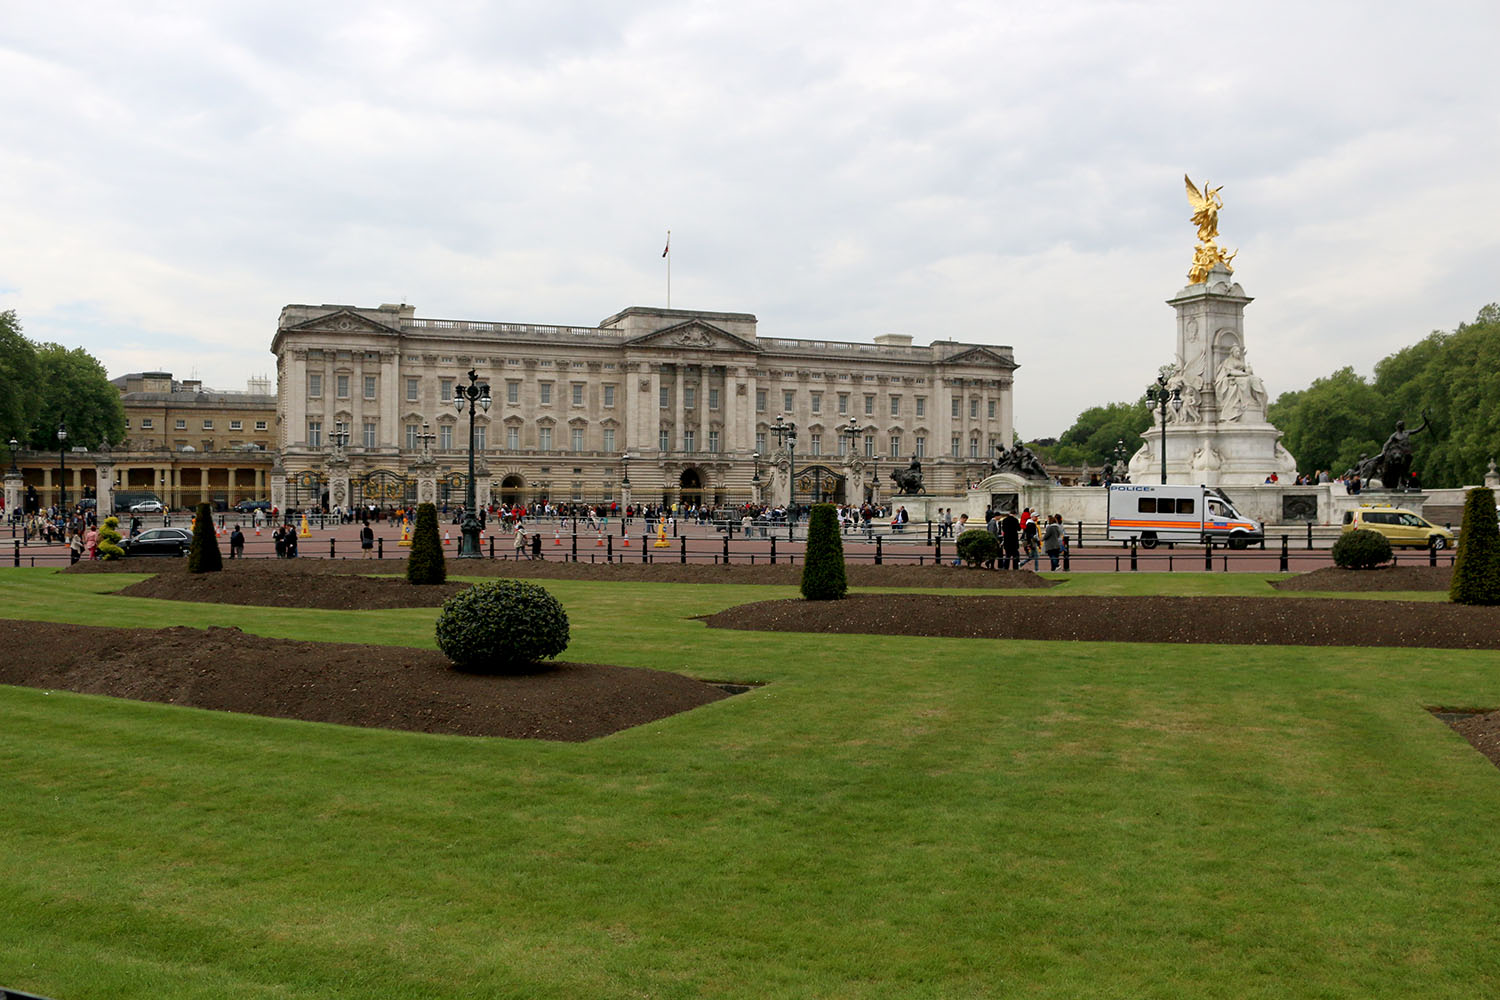 Buckingham Palace, London. One of the many residences of the Queen.